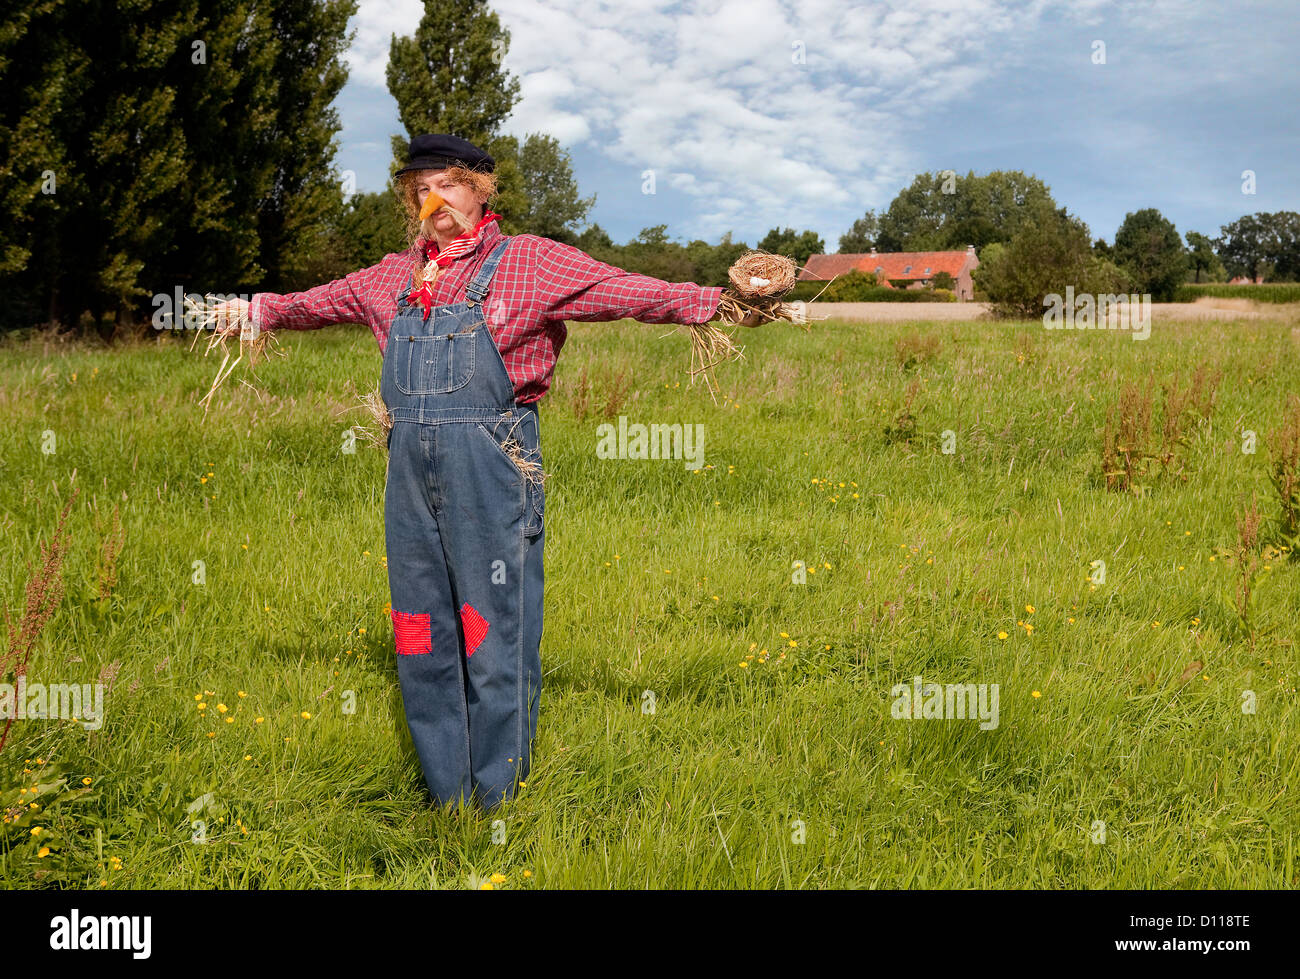 Farmer acting as a living scarecrow holding a bird's nest in his hand - Stock Image